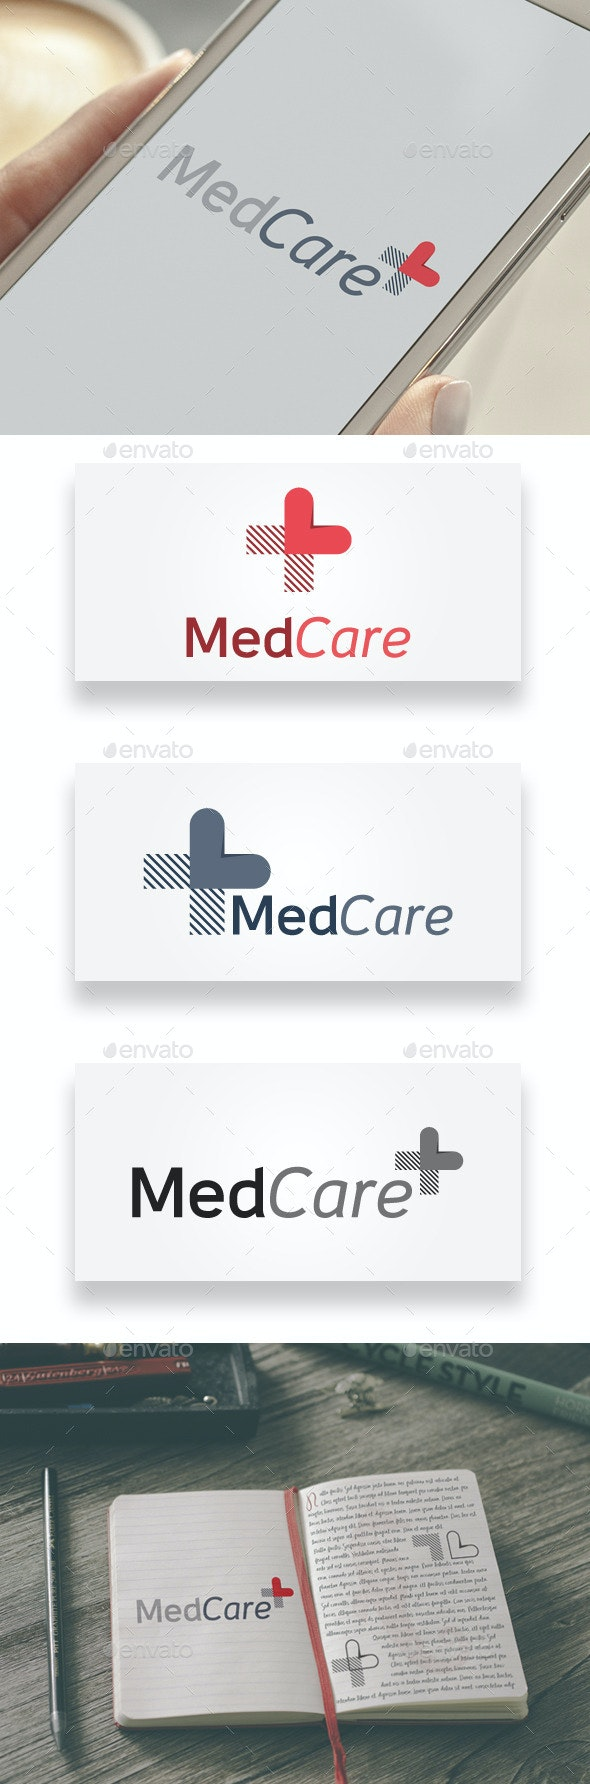 MedCare Logo - Abstract Logo Templates